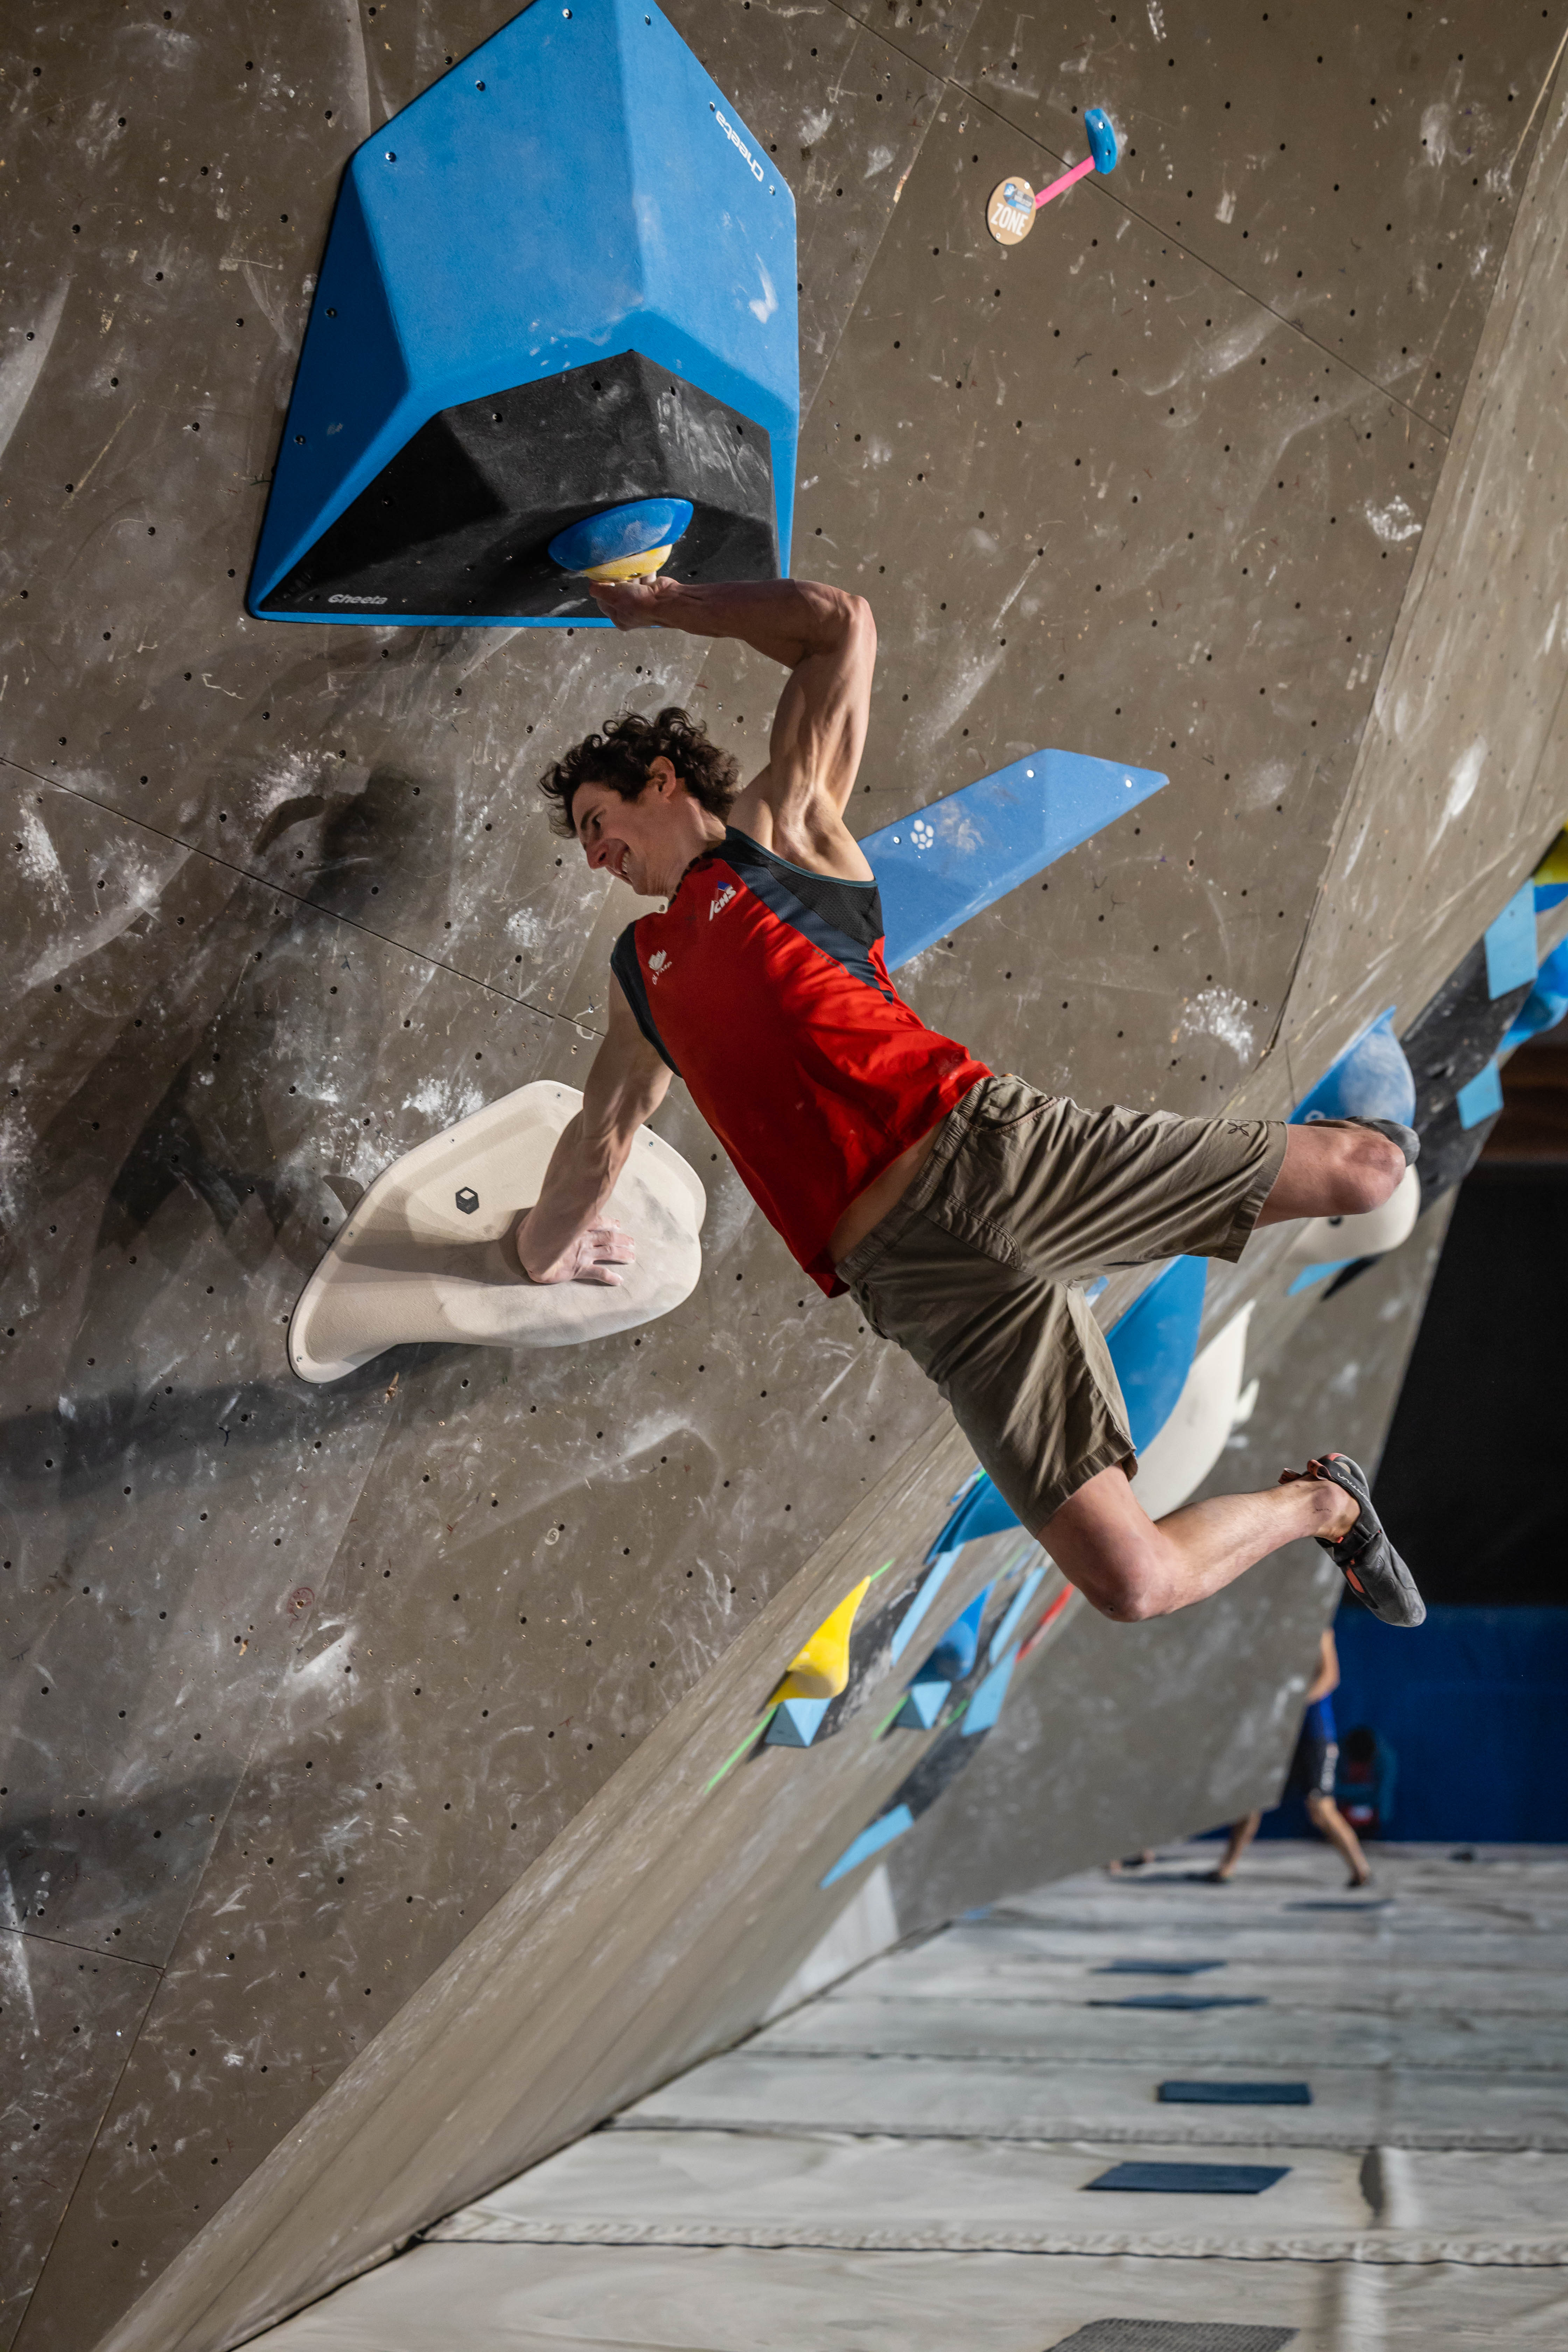 210416 IFSC News Fujii and Ondra Lead the way into the Mens Semi Final in Meiringen